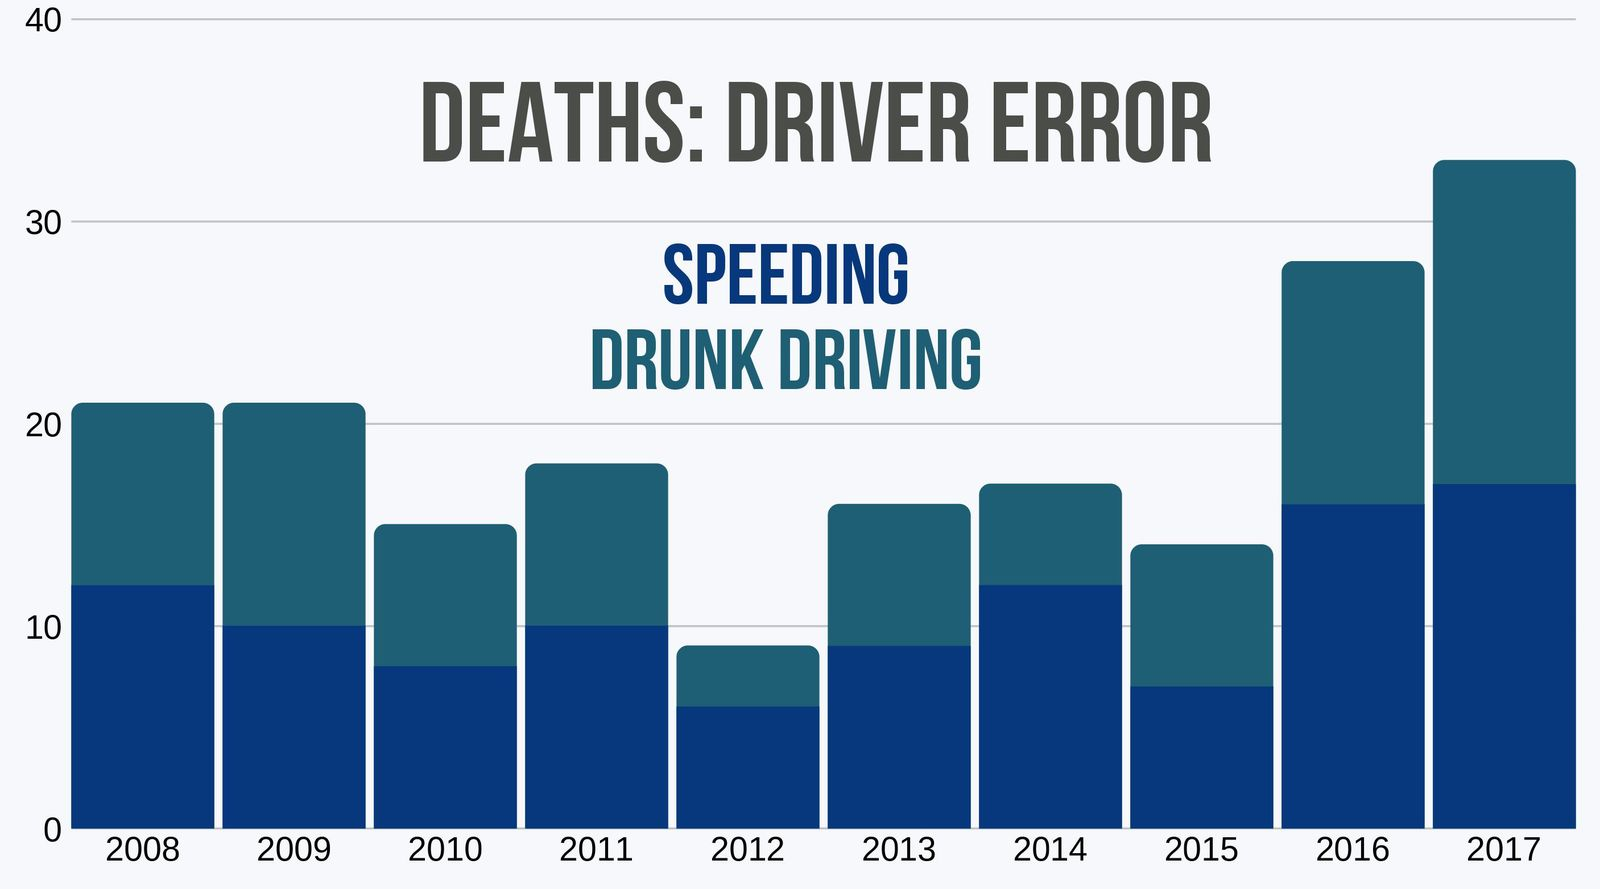 Deaths in DC by speeding or drunk driving 10 year trend